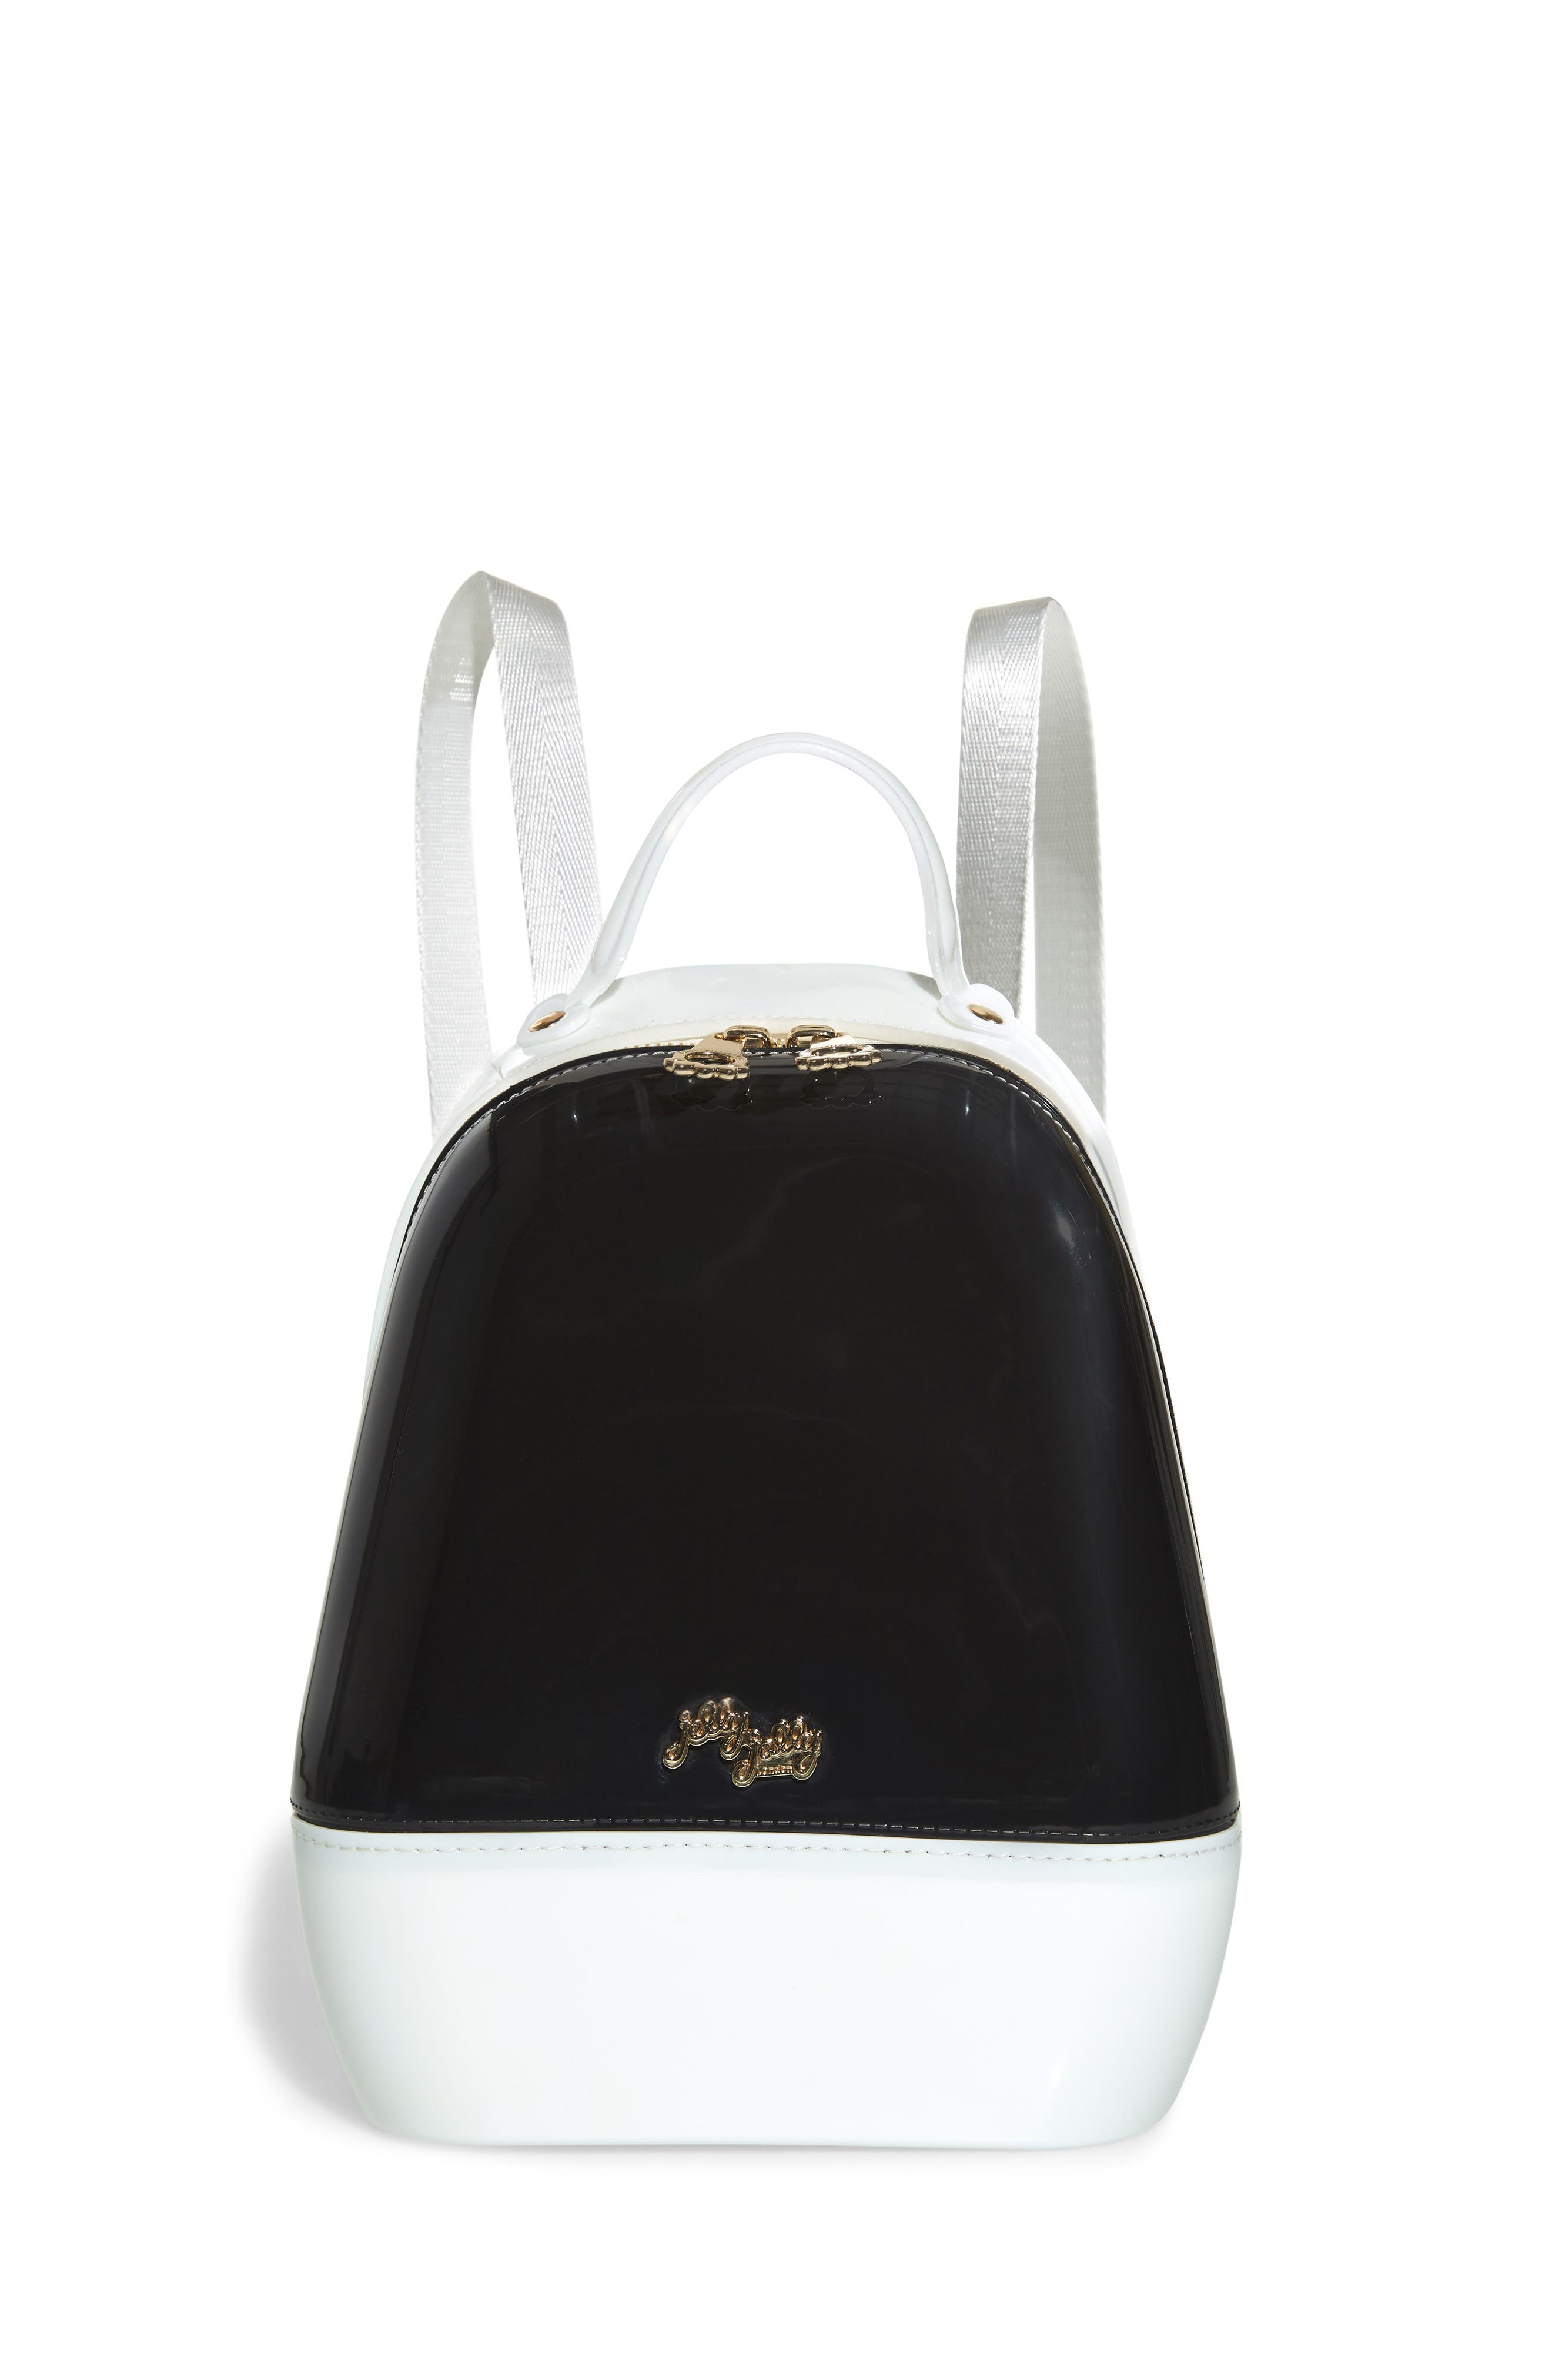 Annabelle Backpack,                             Main thumbnail 1, color,                             BLACK AND WHITE